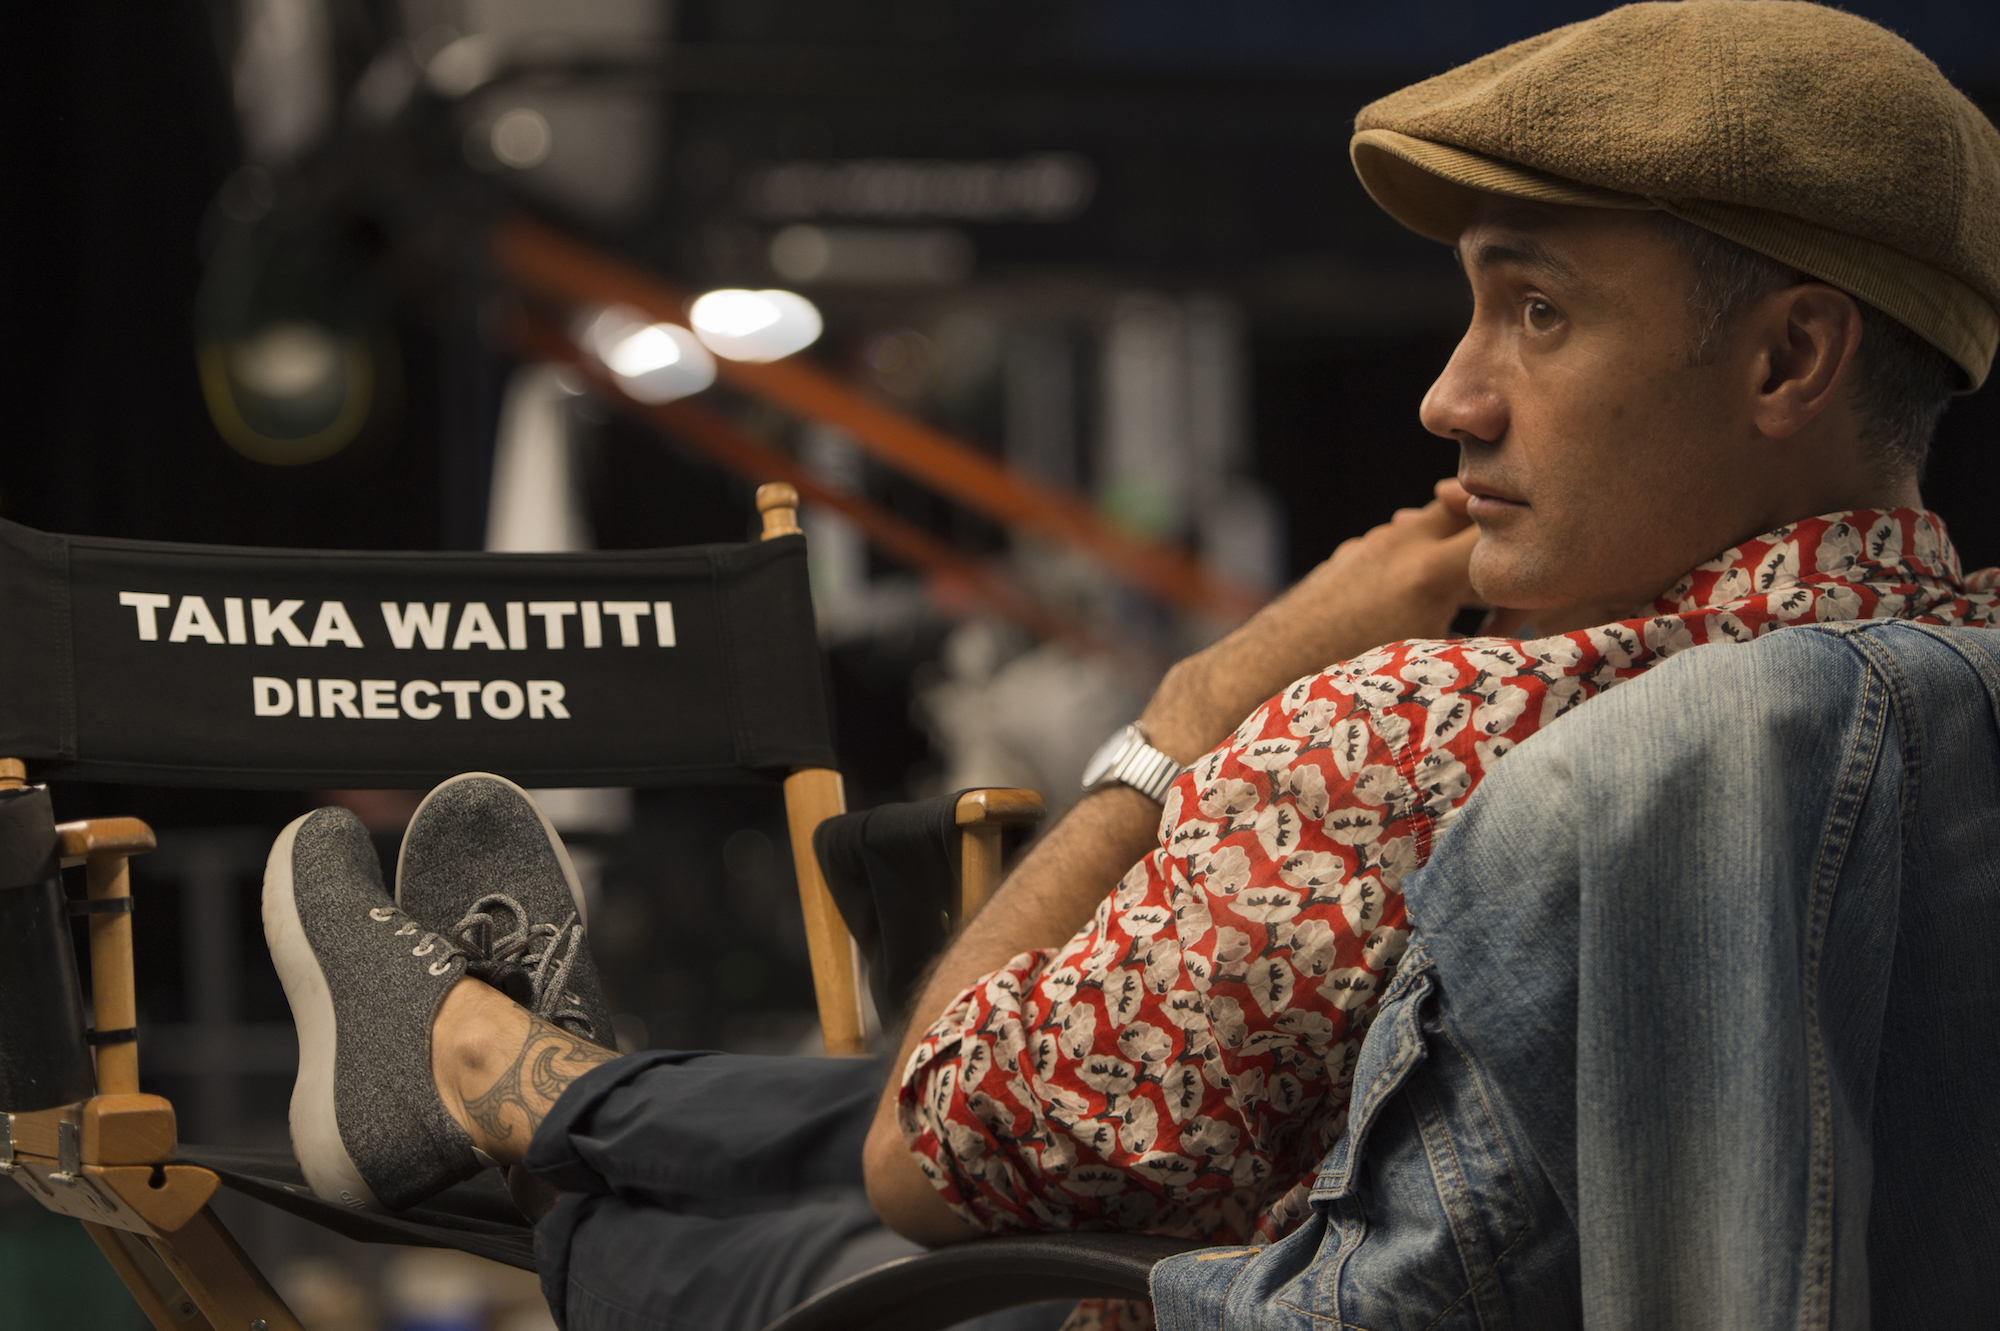 exclusive interview with Director Taika Waititi